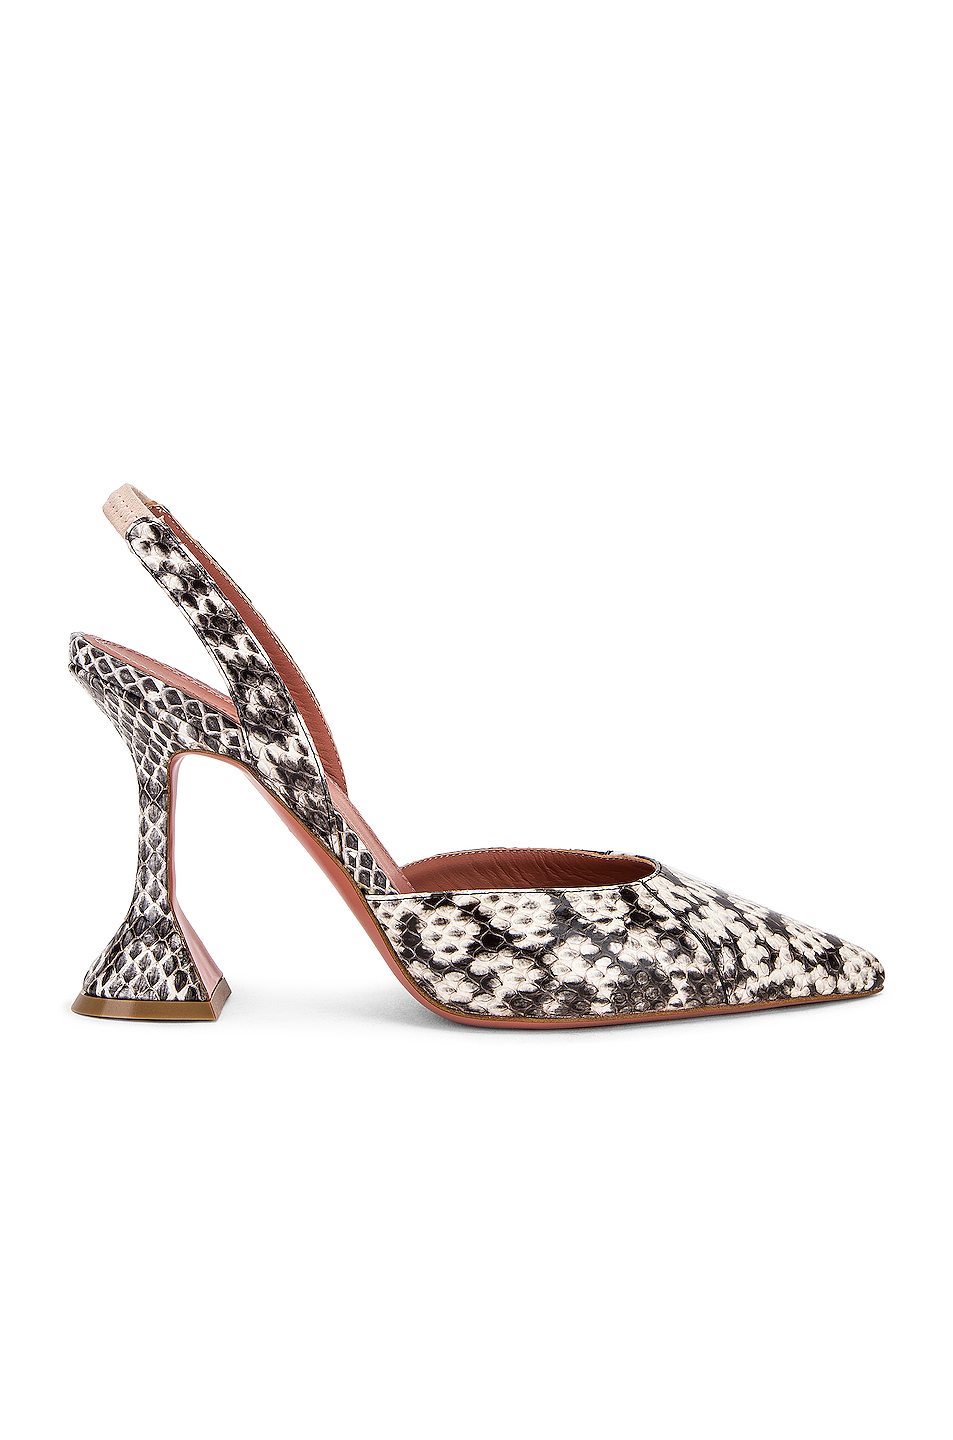 Holli Slingback Pumps by Amina Muaddi, available on fwrd.com for $830 Rosie Huntington Whiteley Shoes Exact Product